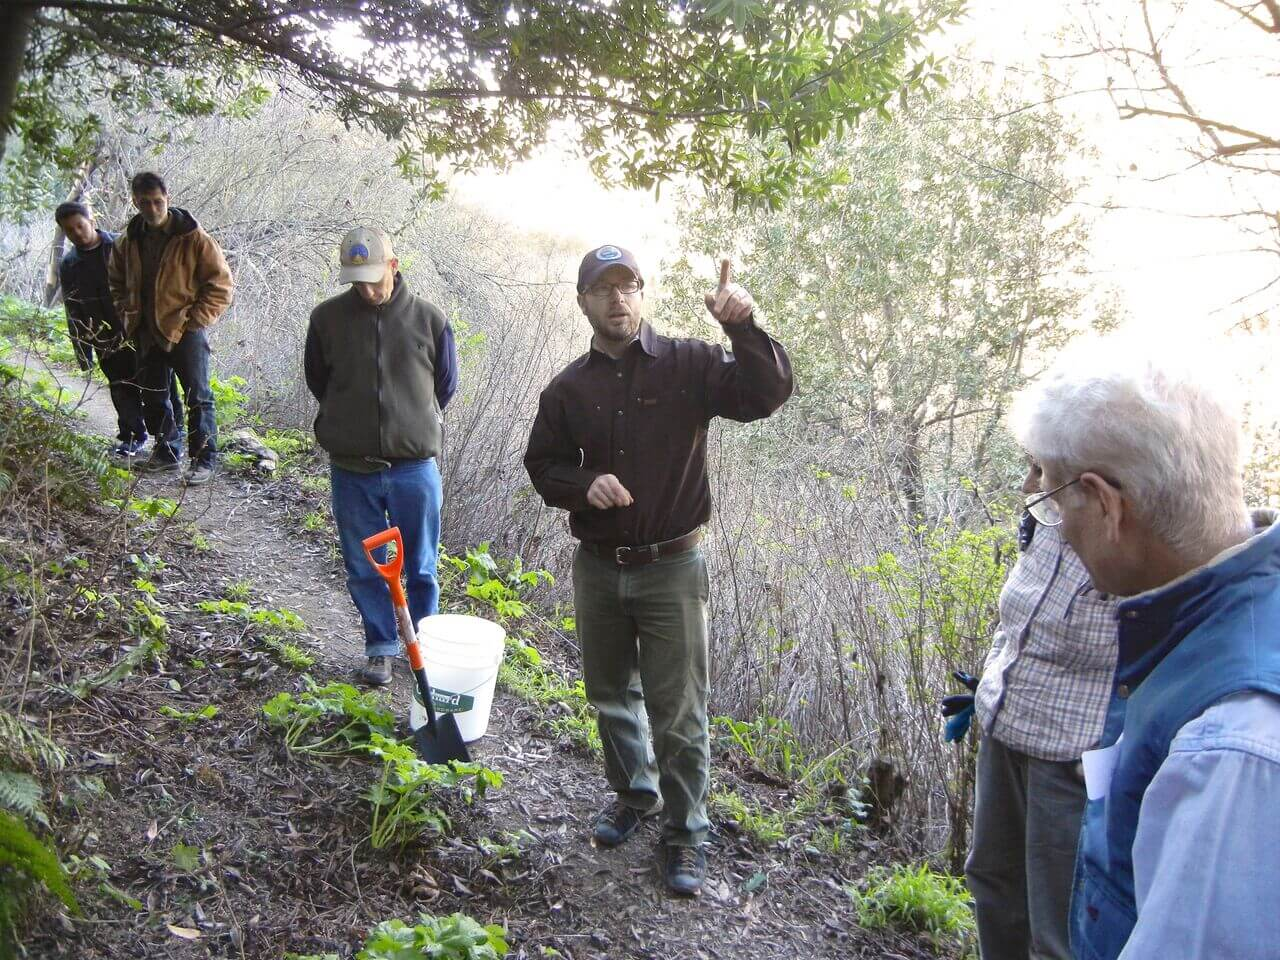 Workshop leader, Lech Naumovich, teaches the group how to transplant native cowparsnips  .